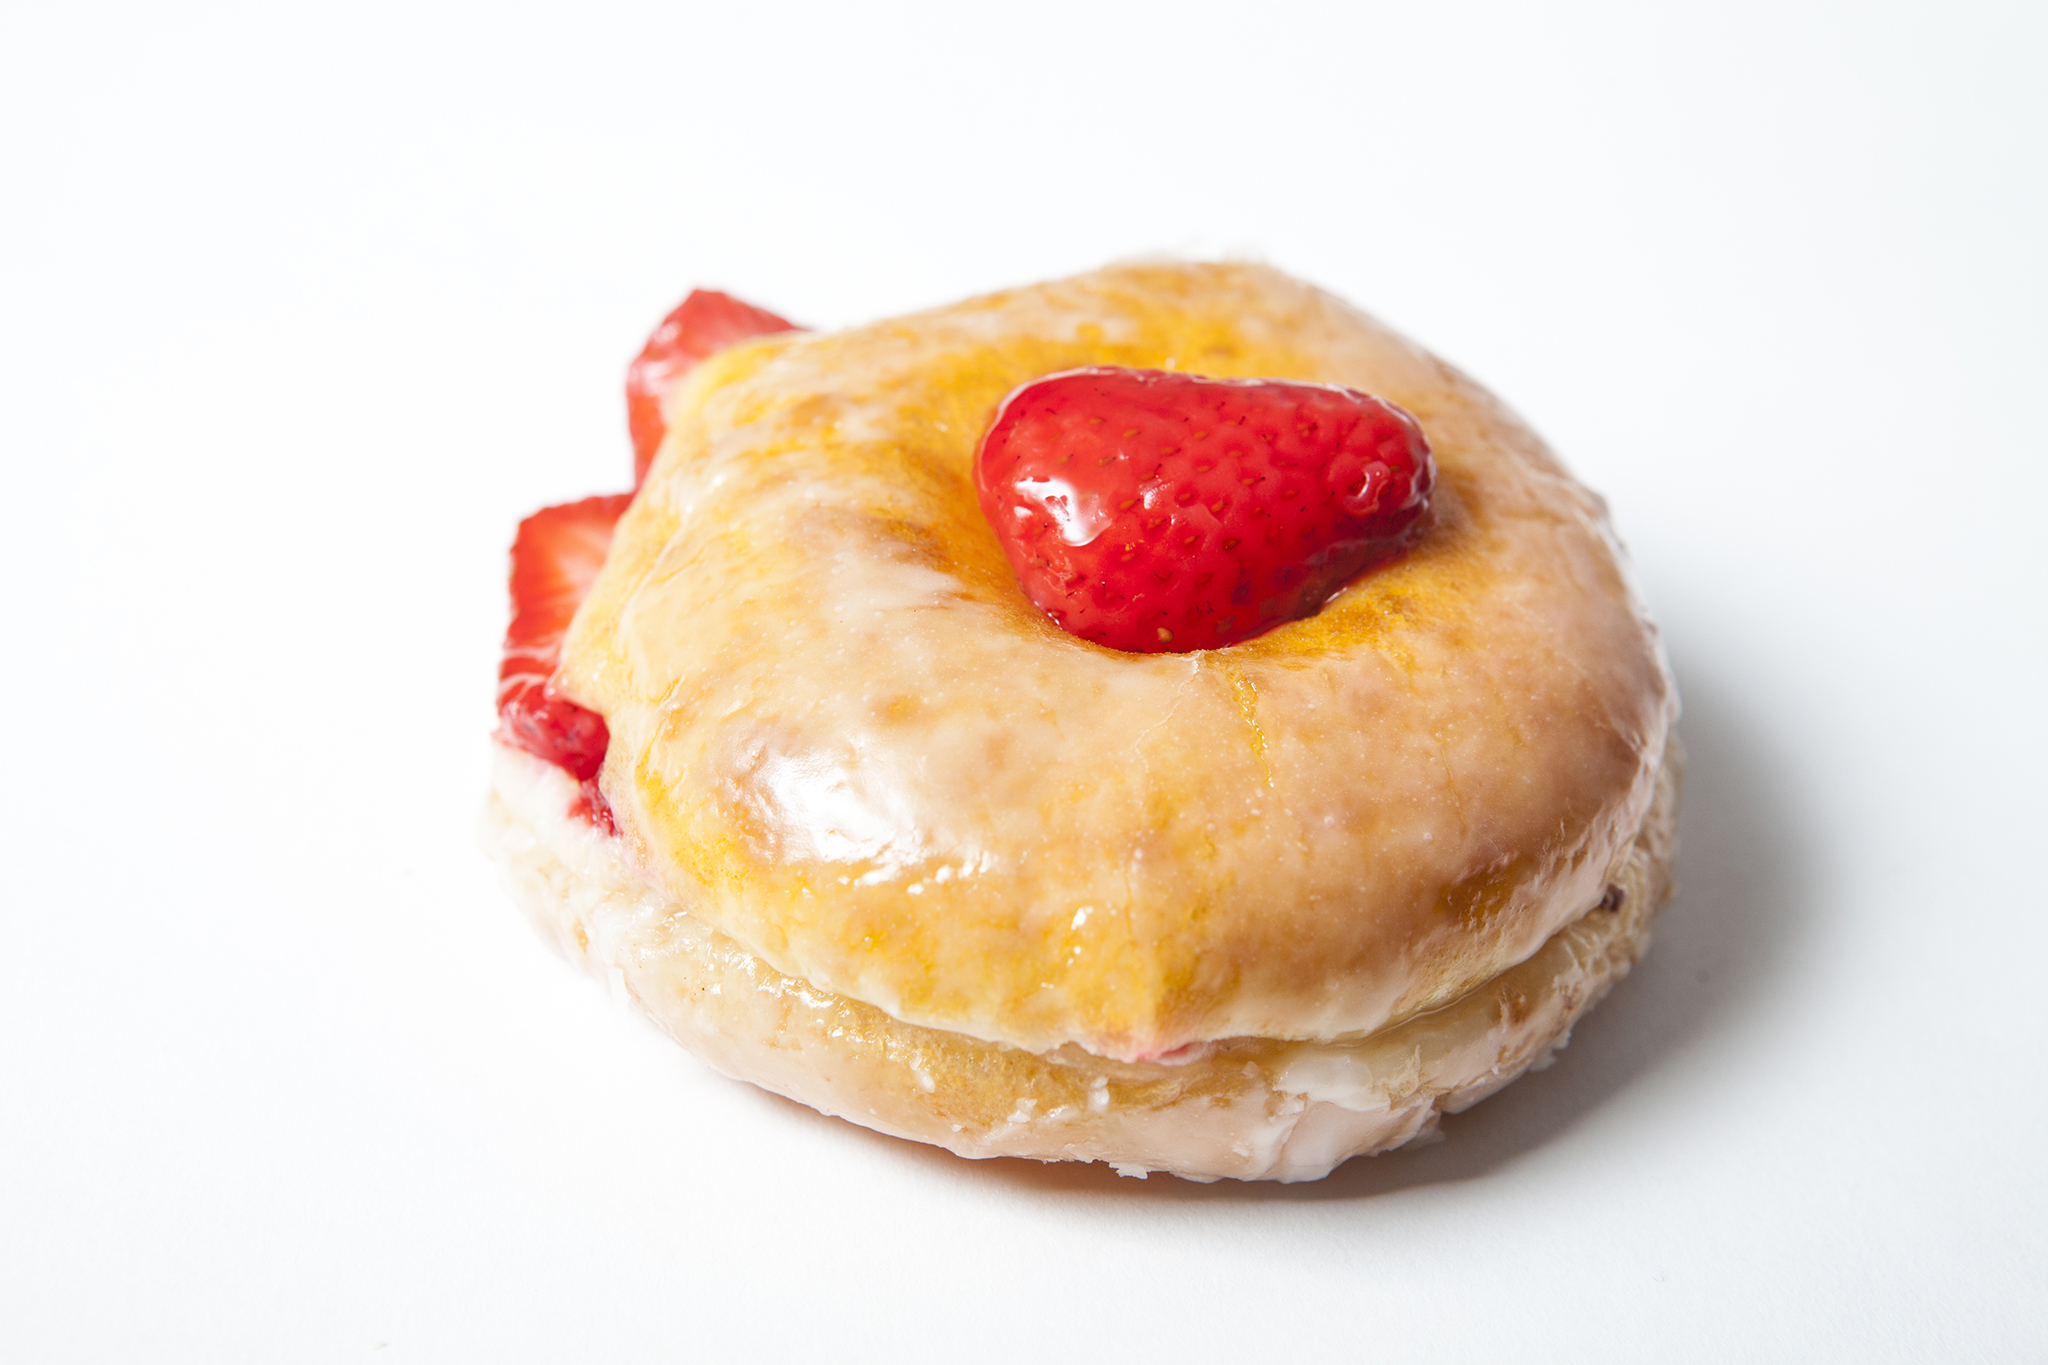 The best donuts in LA: Strawberry-filled donut from SK Donuts & Croissants